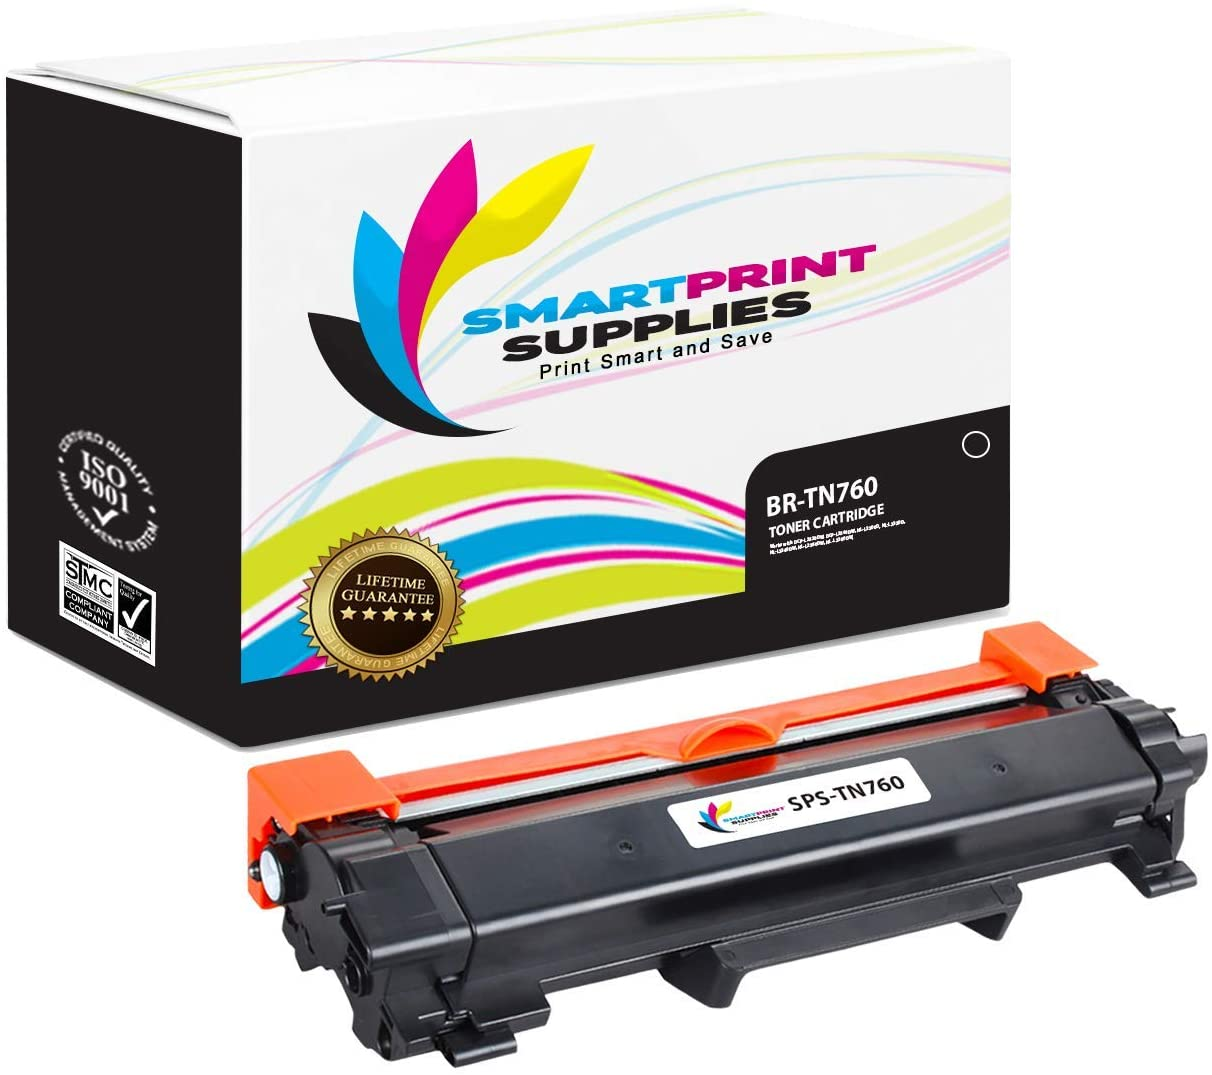 Smart Print Supplies Compatible TN760 TN-760 Black High Yield Toner Cartridge Replacement for Brother HL-L2350DW L2370DW L2390DW L2395DW, MFC-L2710DW L2750DW, DCP-L2550DW Printers (3,000 Pages)